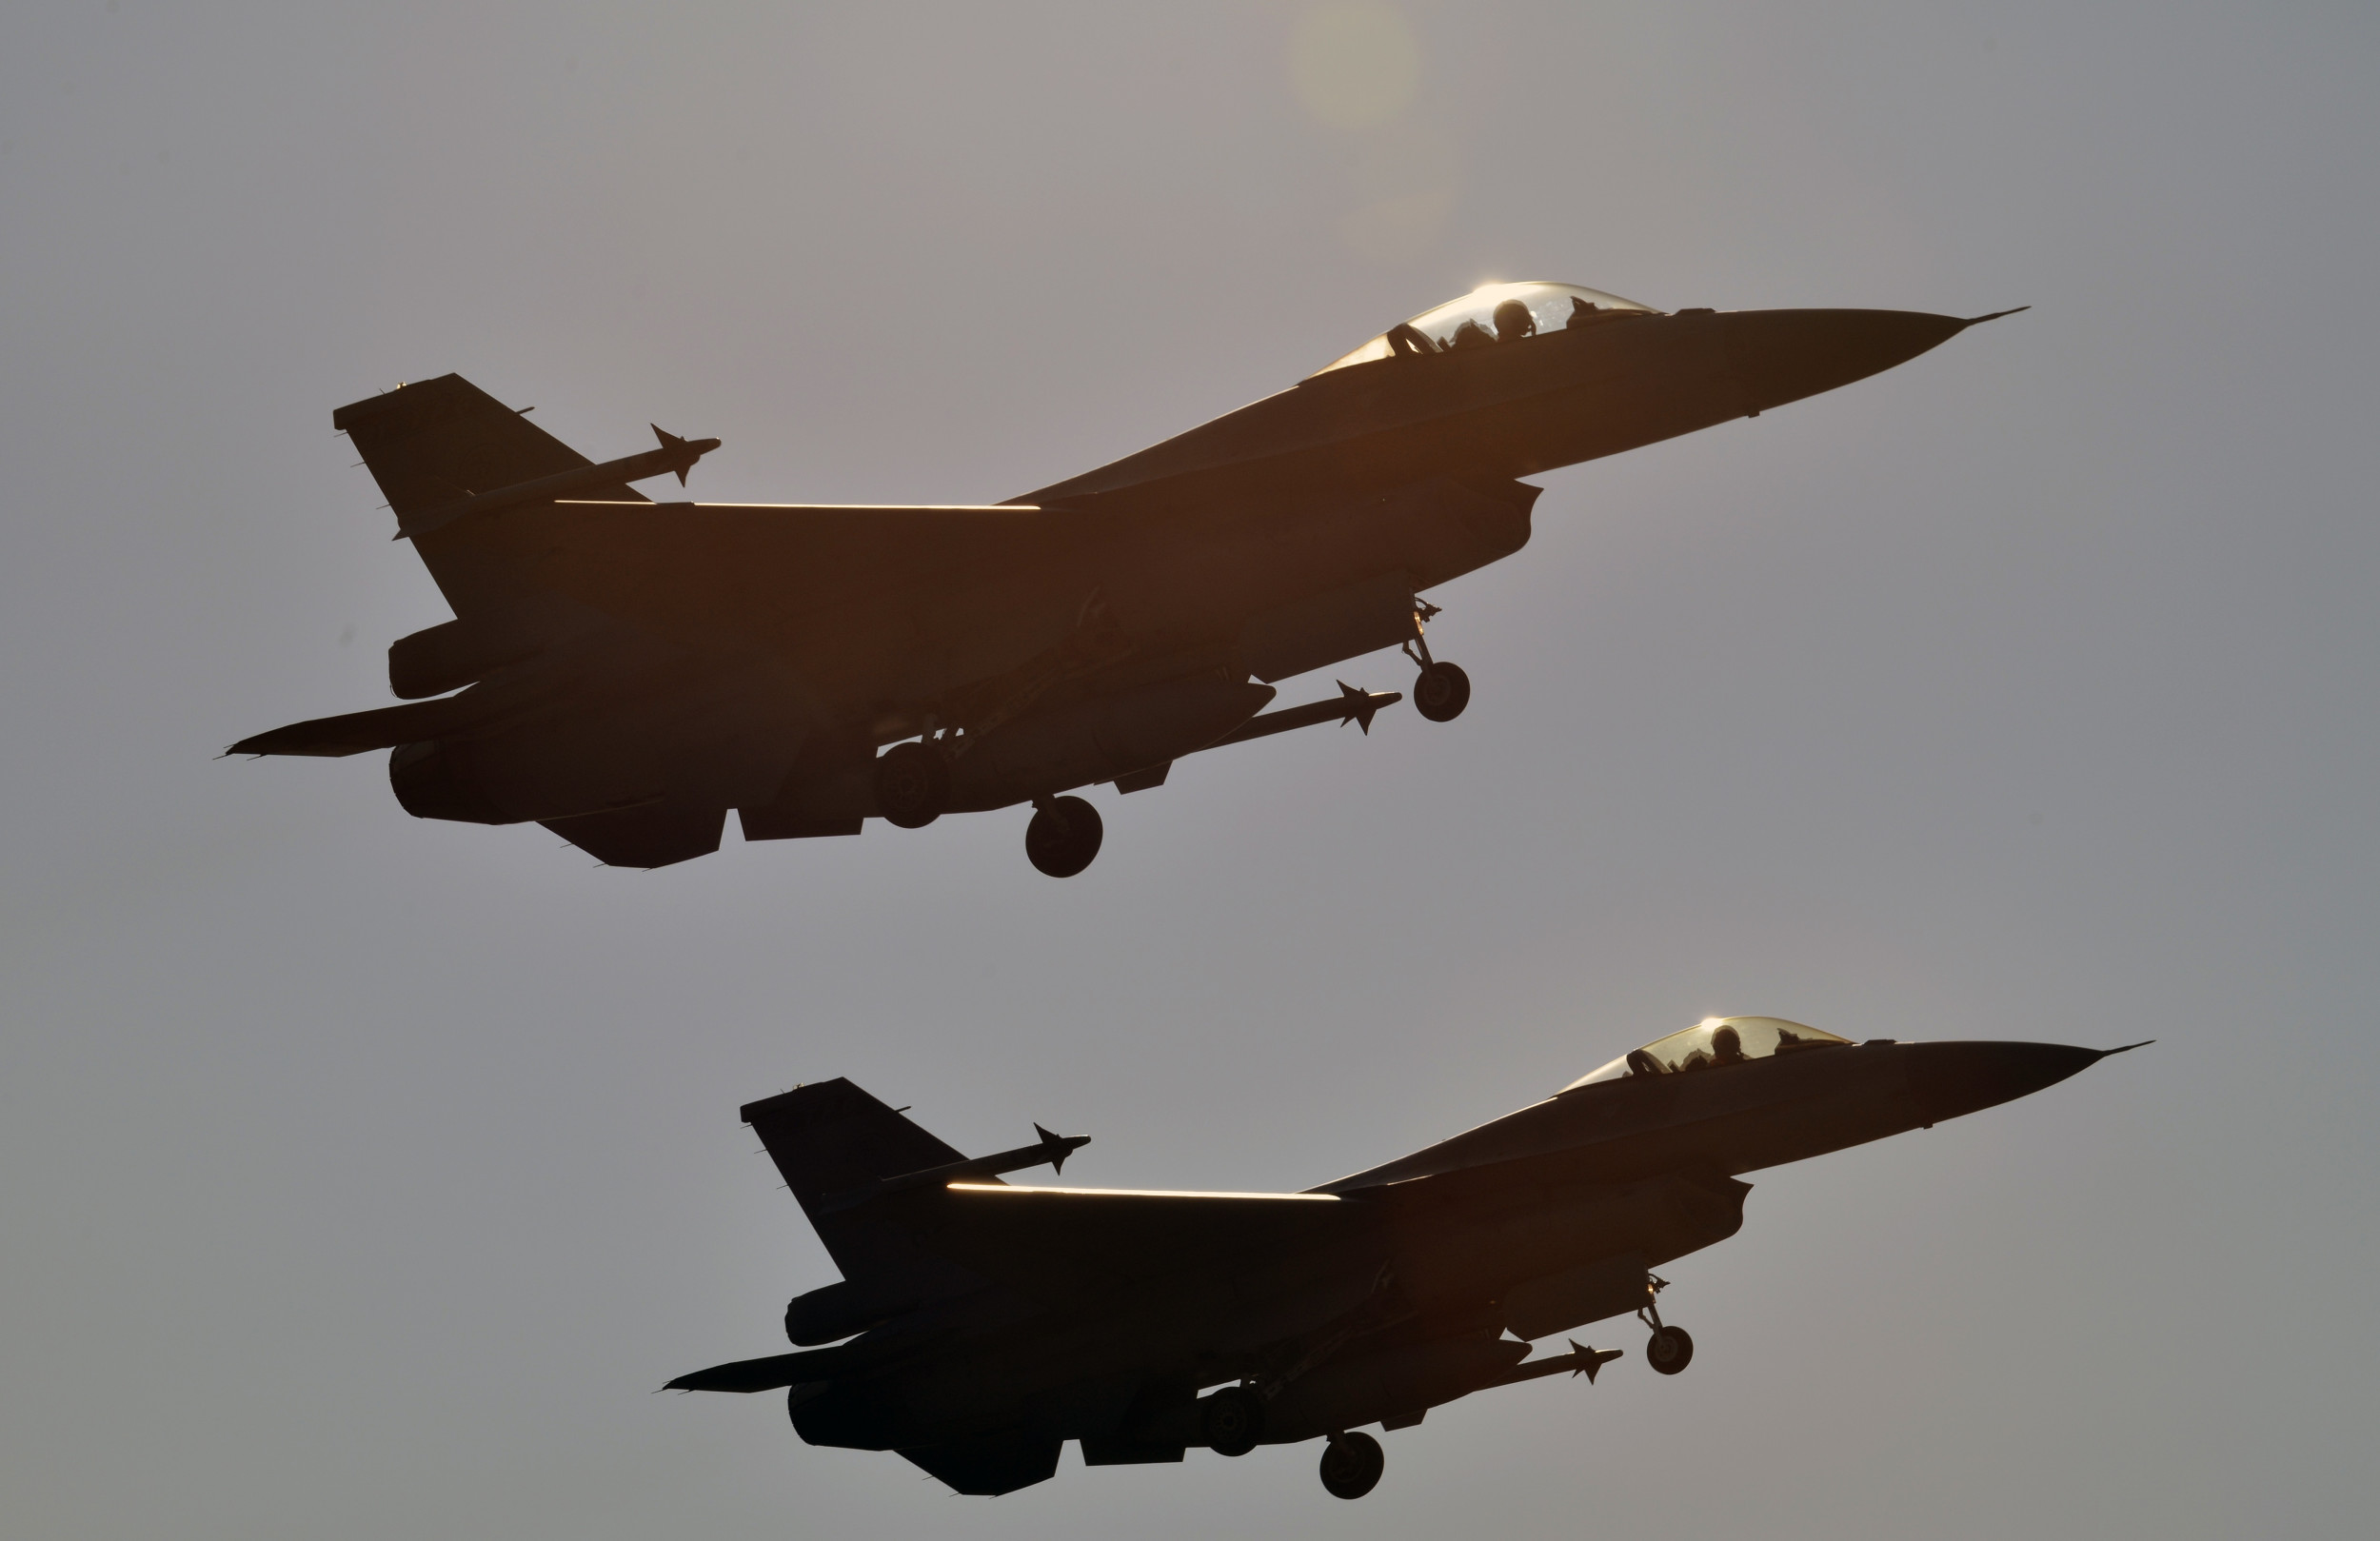 Chinese fighter pilot sends 'airspace' warning on latest weak with Taiwan